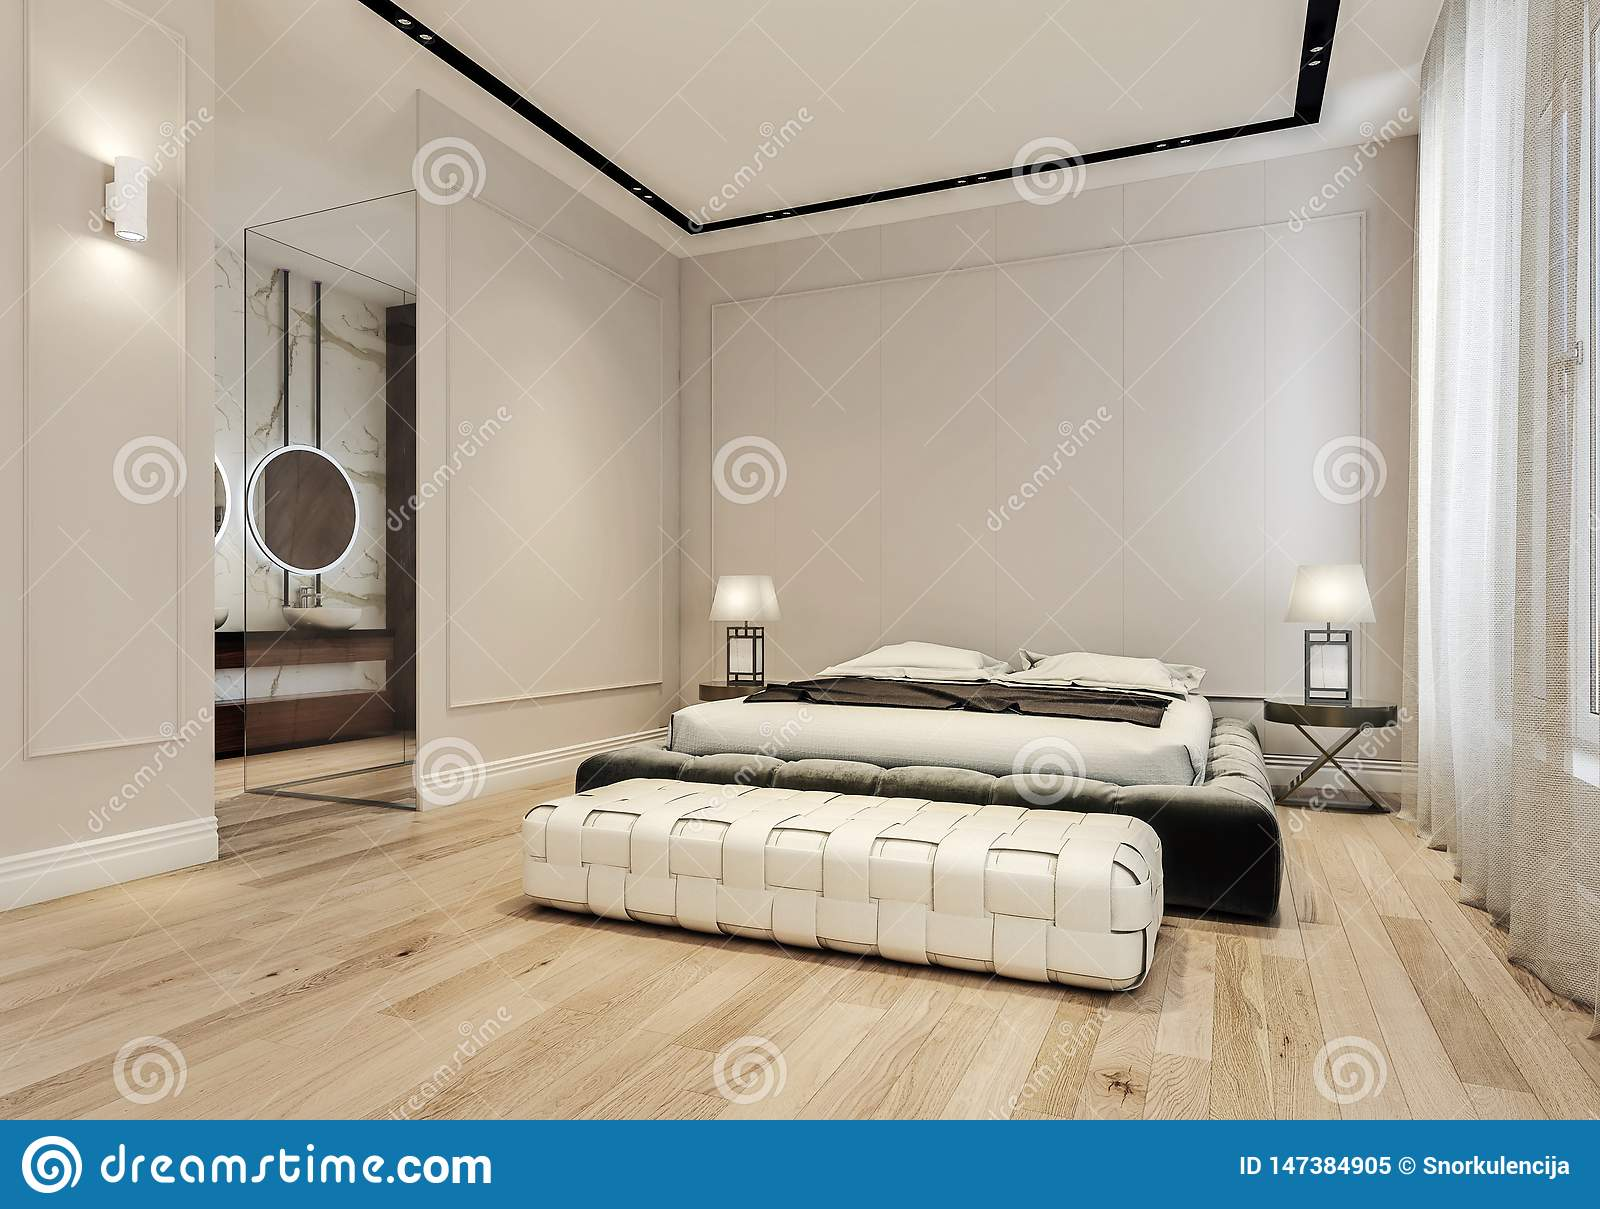 Modern Interior Design Of Master Bedroom With Large Bathroom King Size Bed With Bed Sheets Stock Image Image Of Architecture Grey 147384905